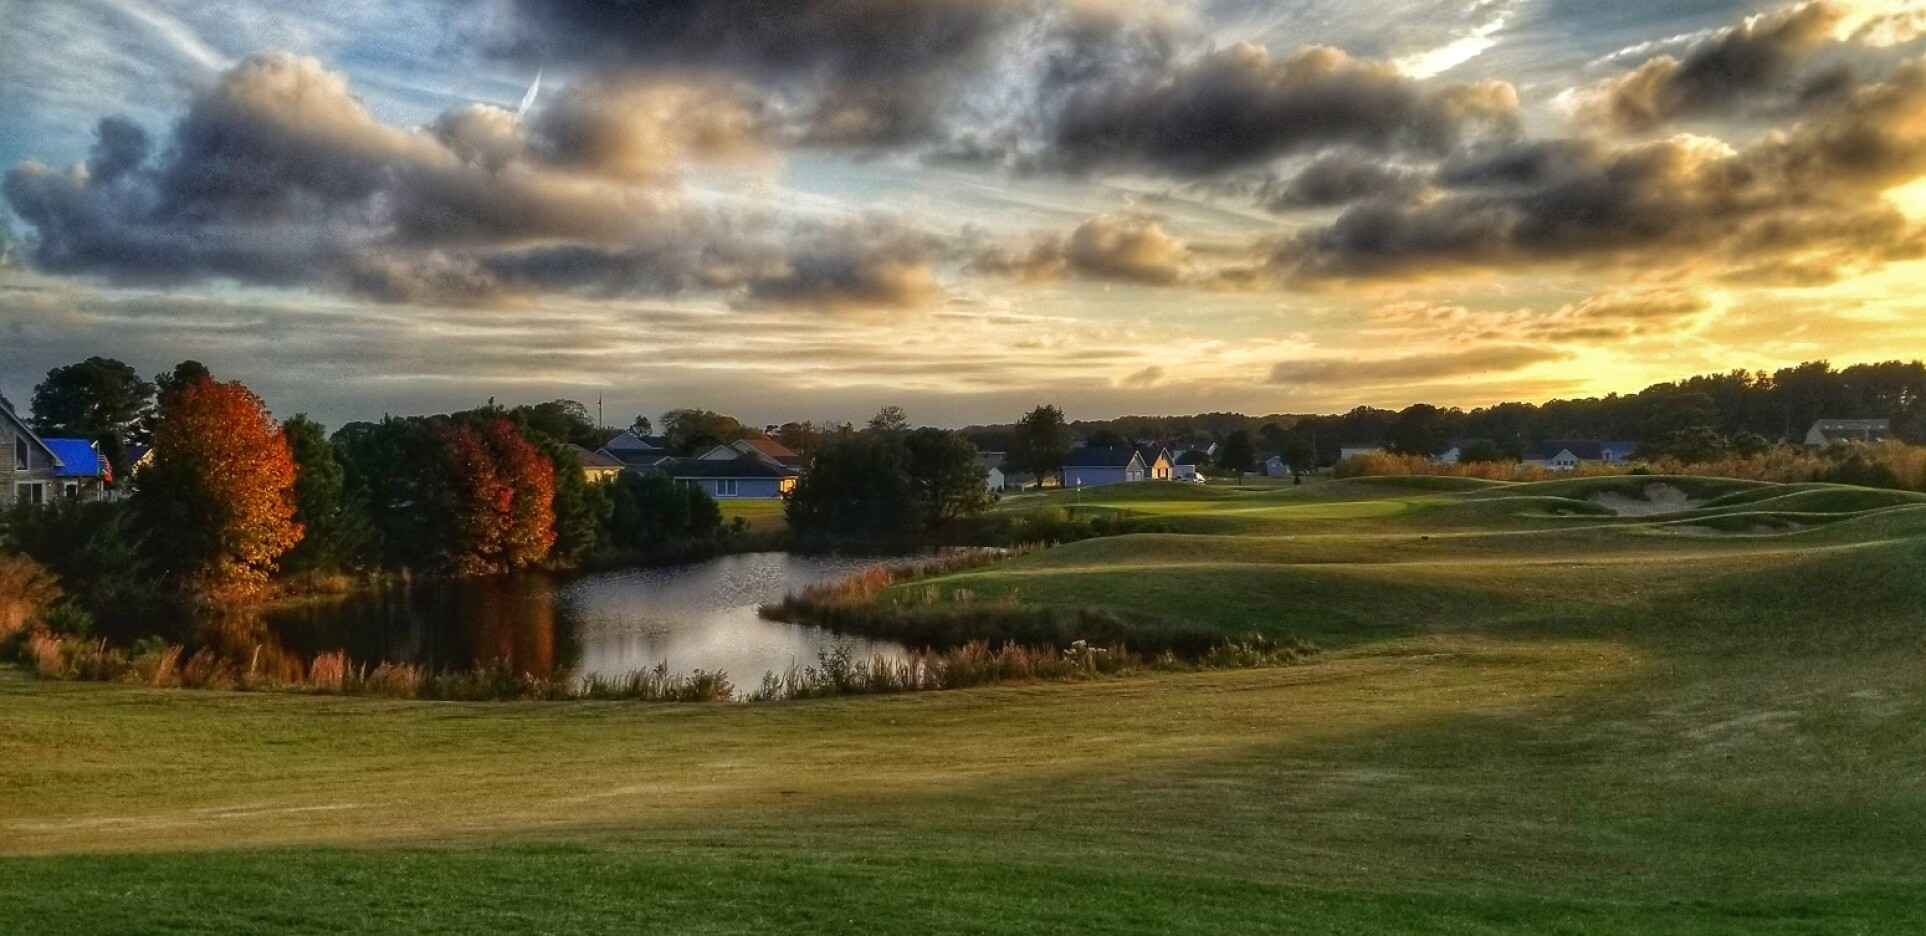 Captain's Cove golf course on a cloudy day